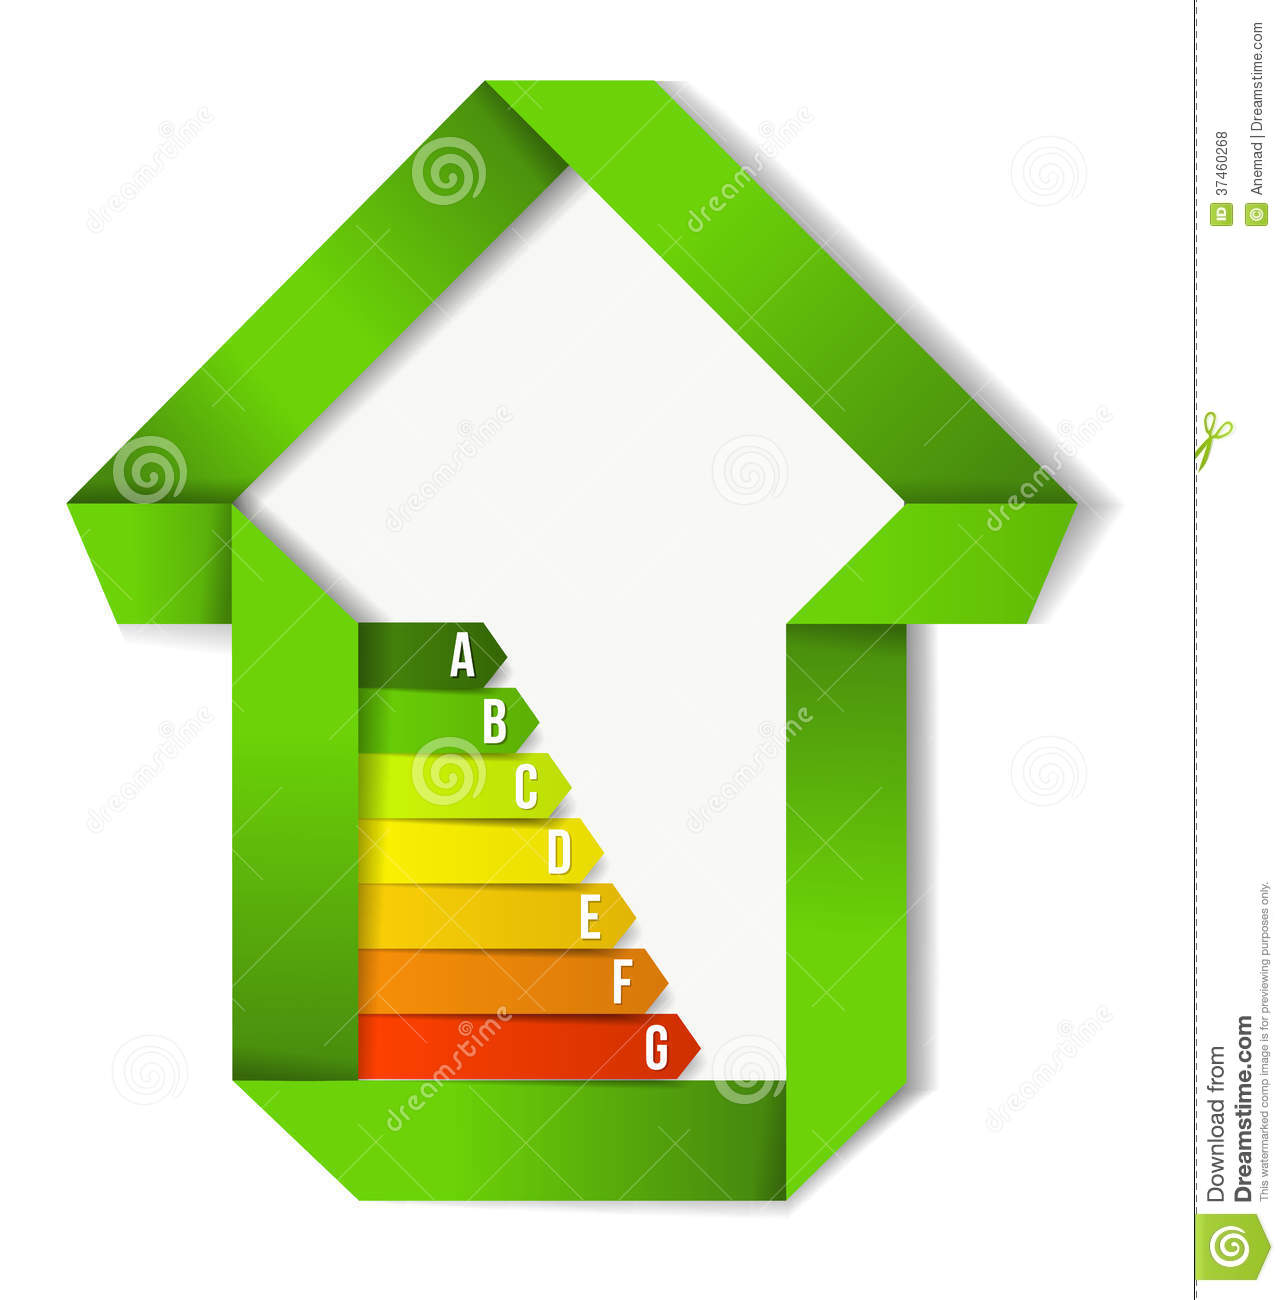 Certified home royalty free stock photos image 37460268 for Green certified home